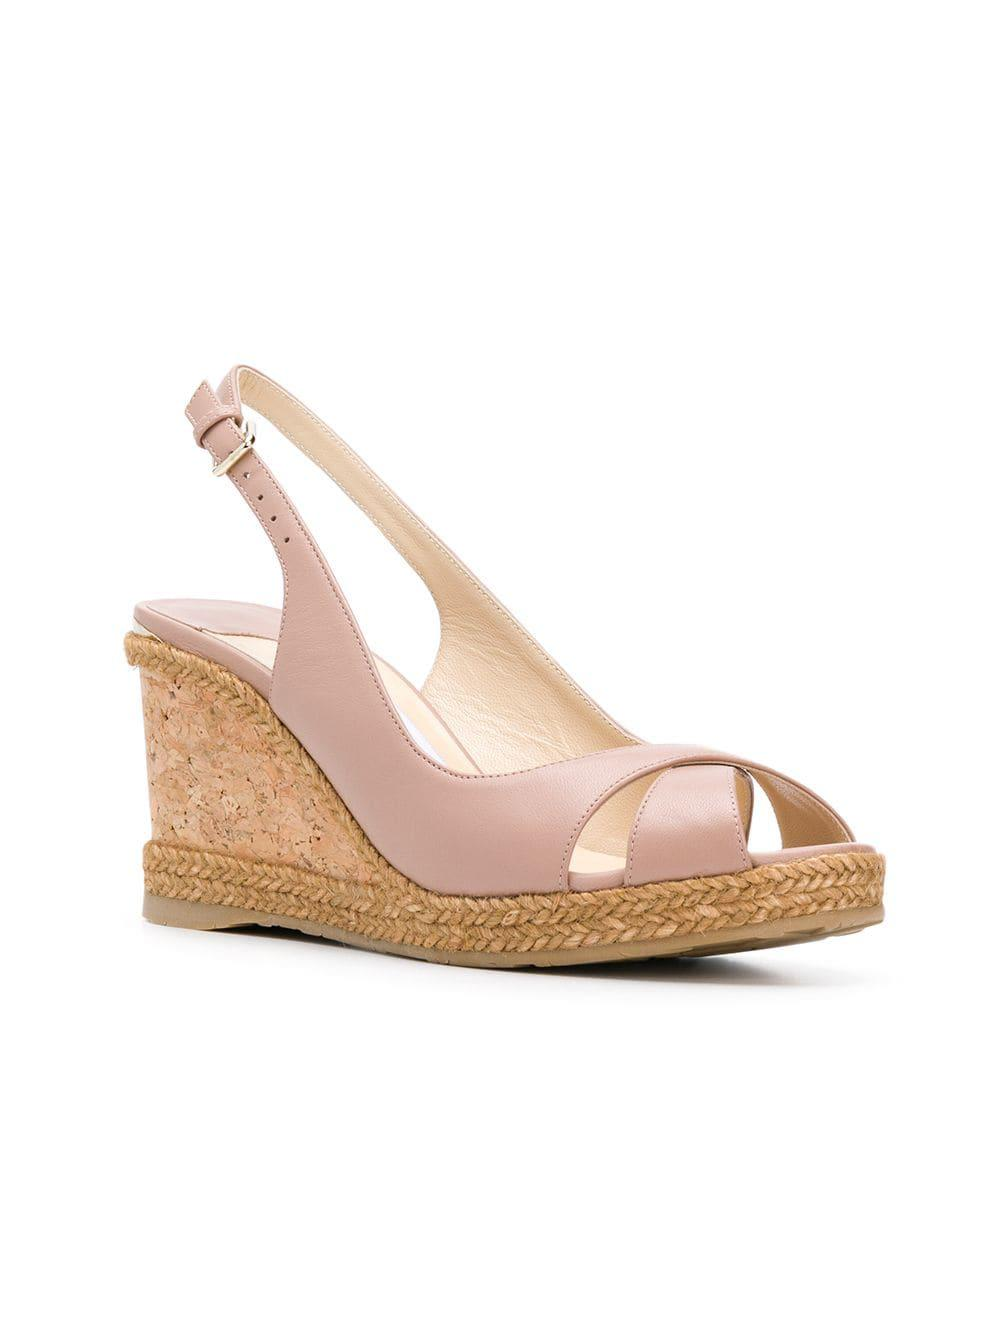 e9a066dbcf0 Jimmy Choo - Pink Amely 80 Sandals - Lyst. View fullscreen